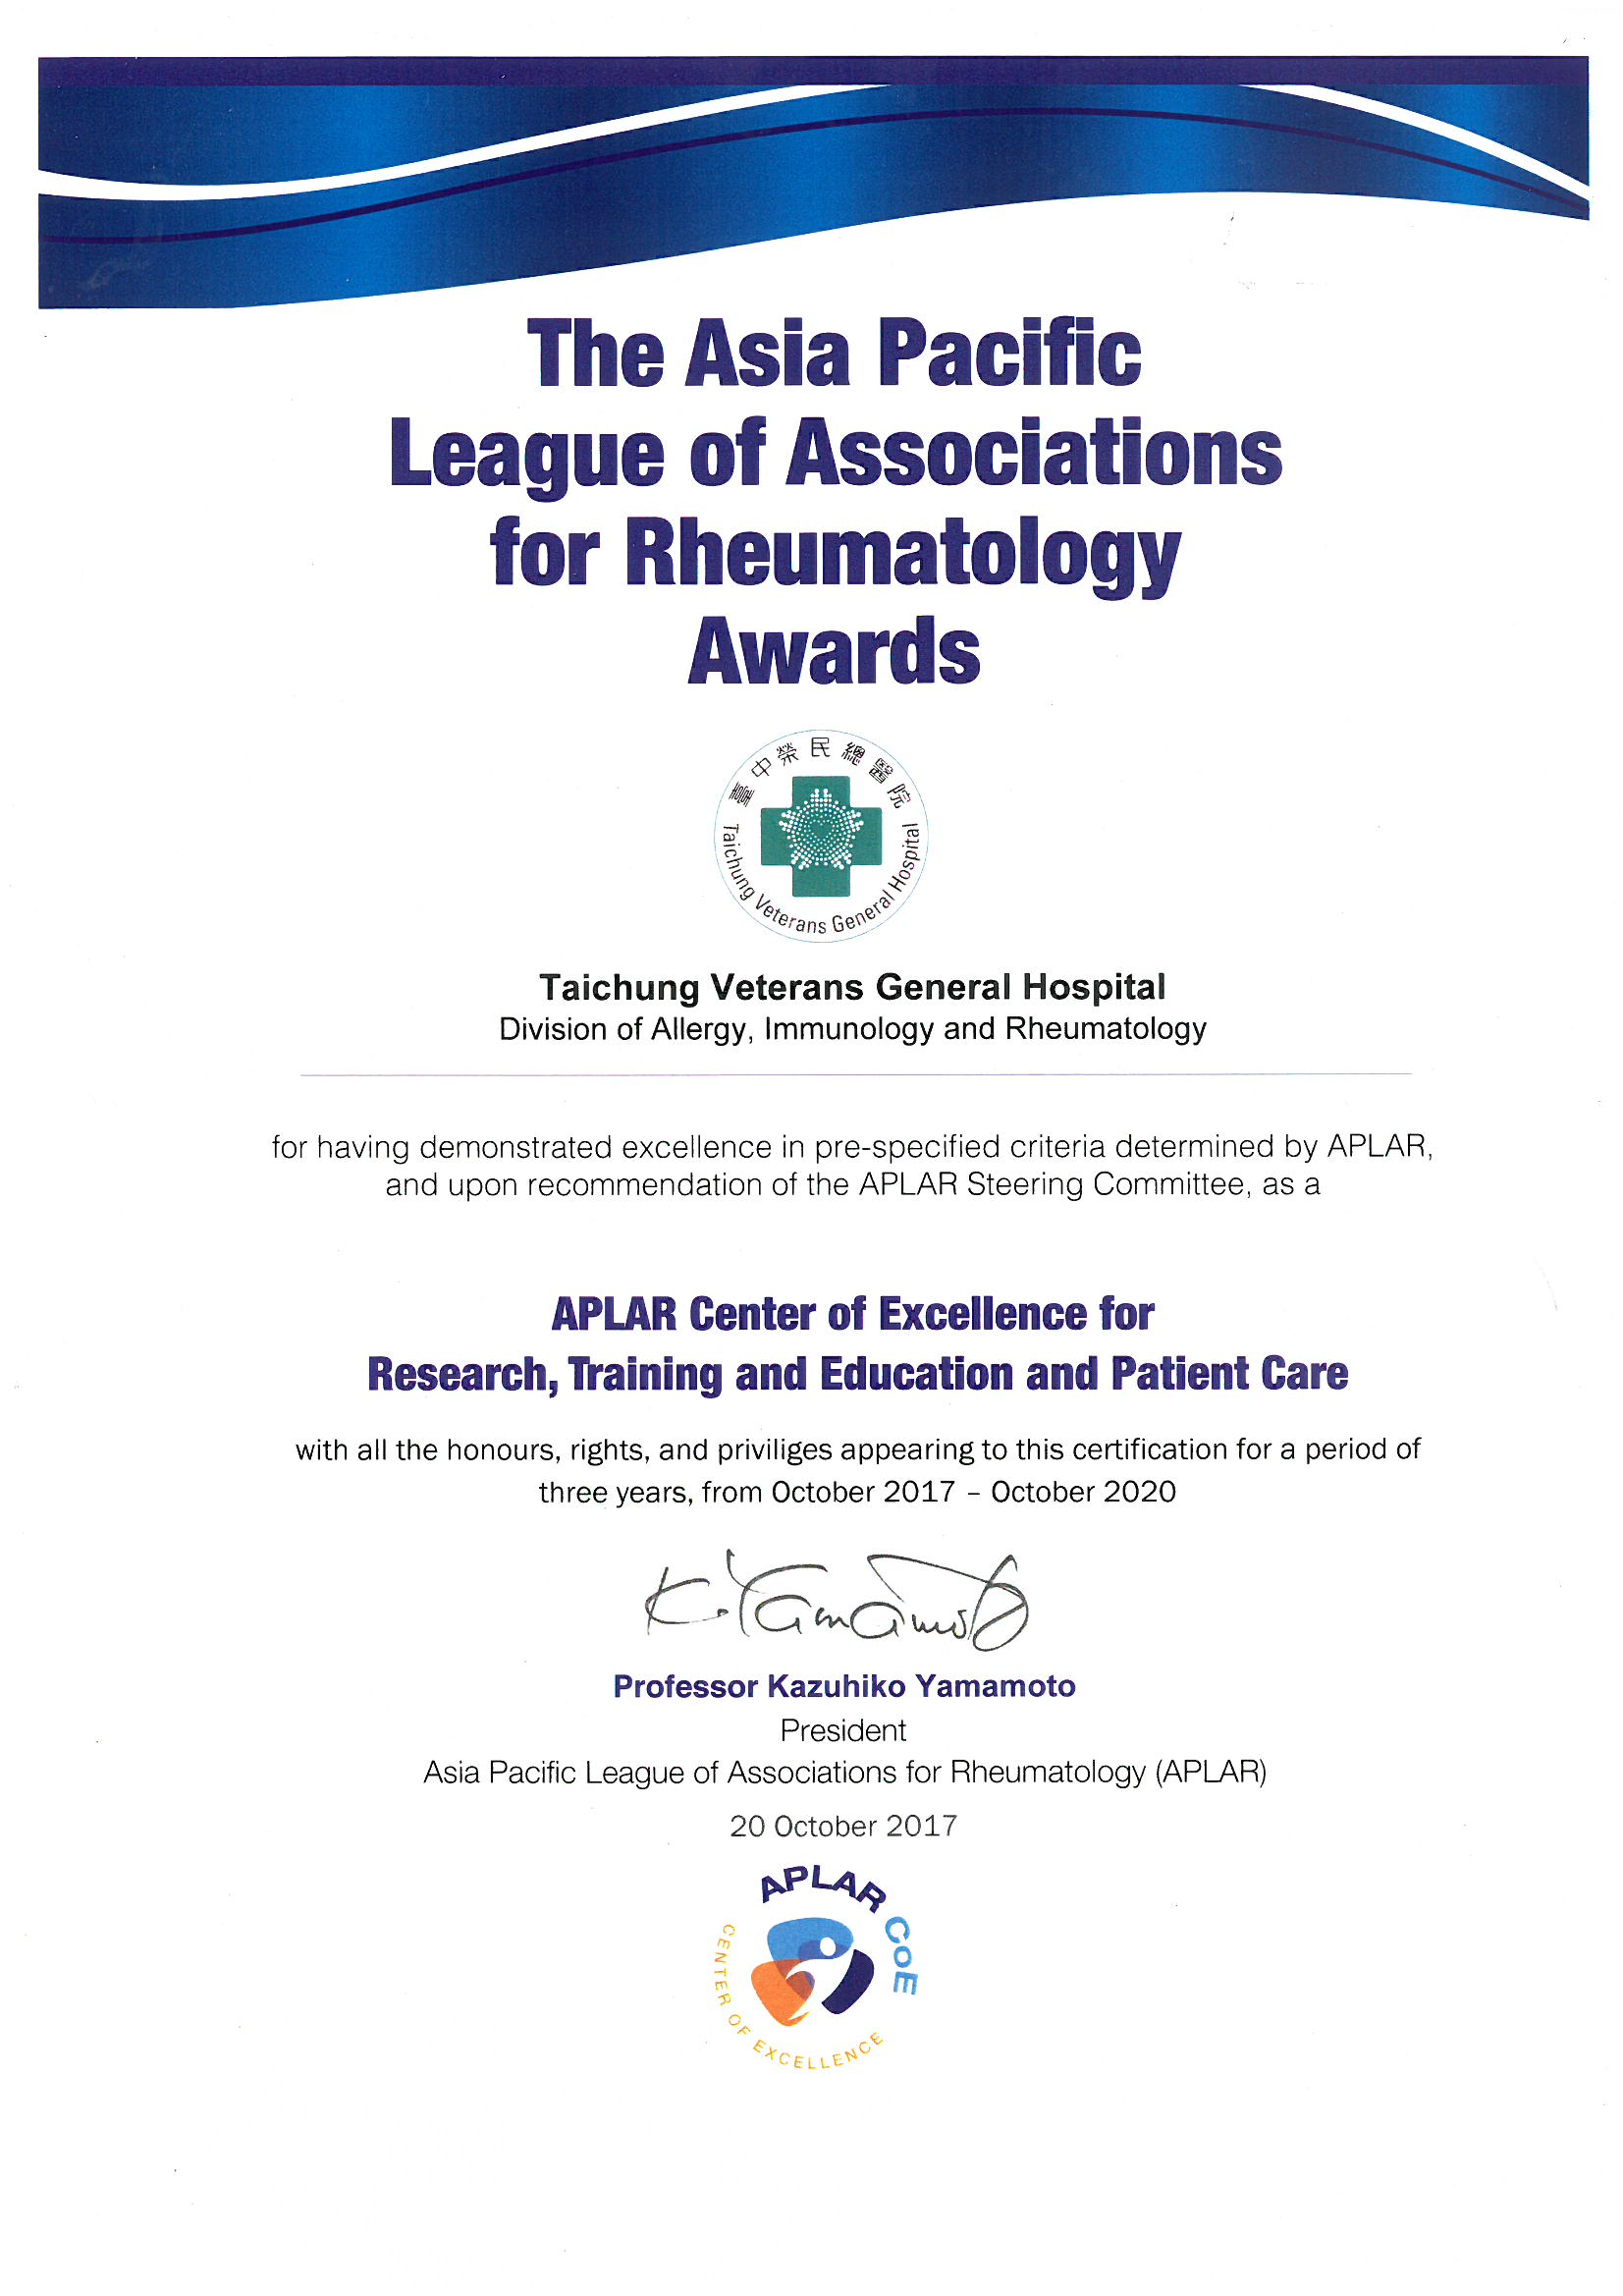 APLAR Center of Excellence by the Asia Pacific League of Associations for Rheumatology